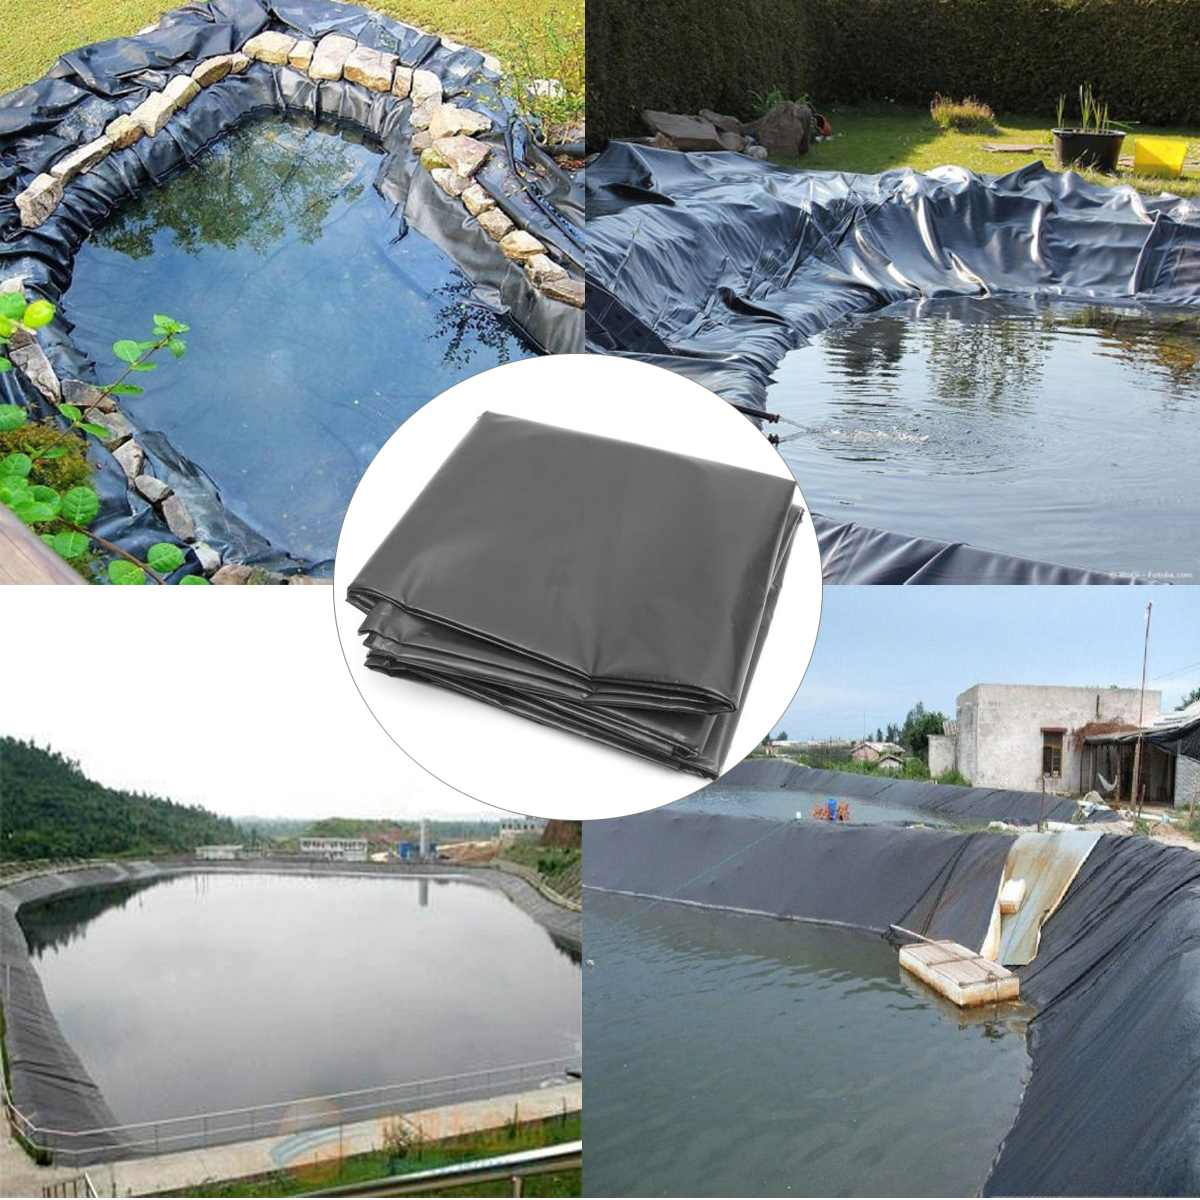 HDPE Fish Pond Liner 1.7x4m / 1.7x3m / 1.7x2m Garden Pond Landscaping Pool Reinforced Thick Heavy Duty Waterproof Membrane Liner